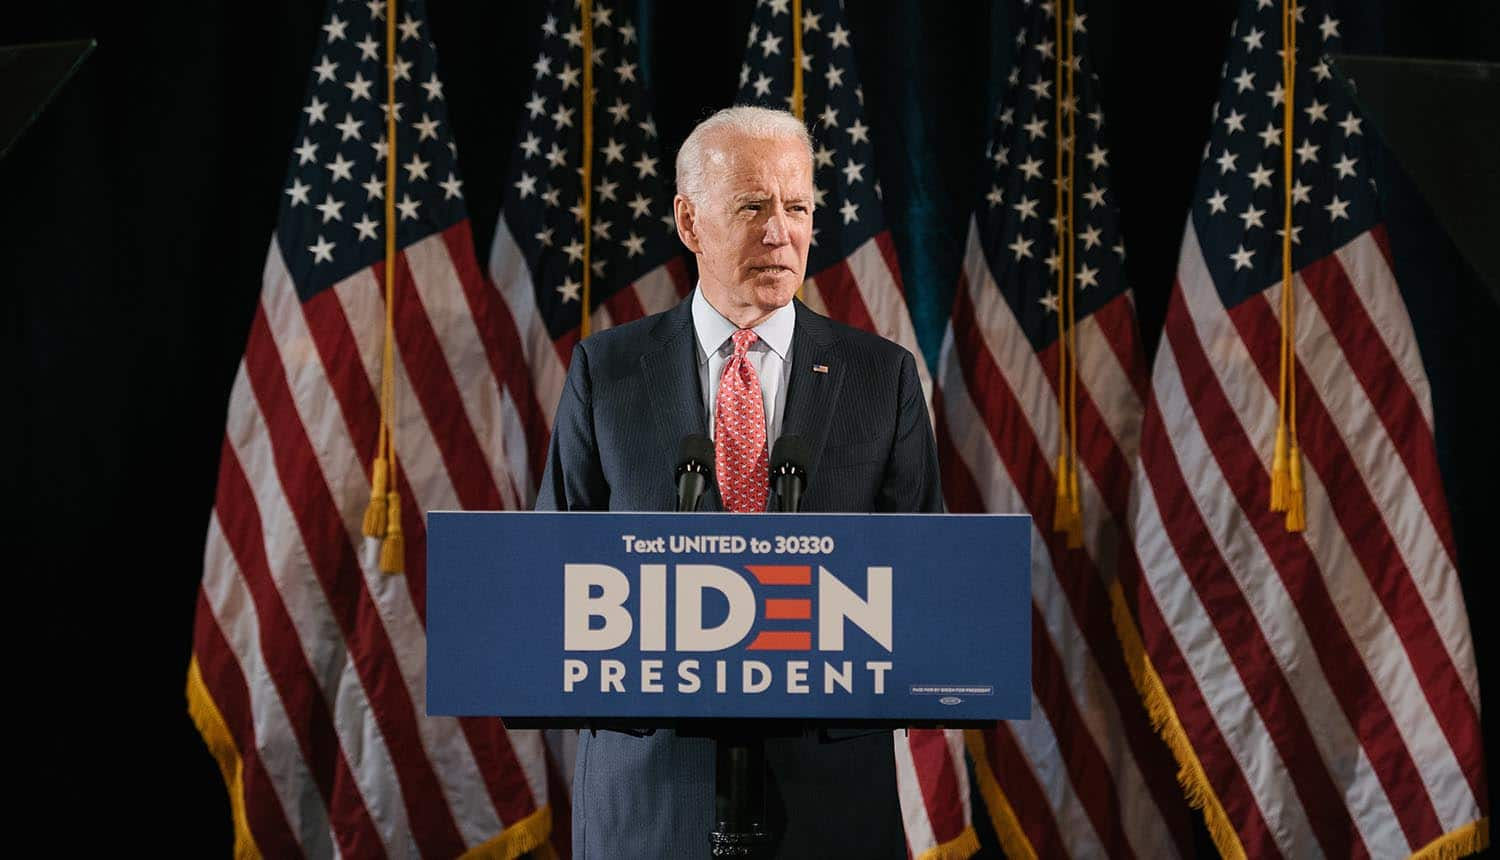 2020 election candidate Joe Biden on podium showing hacker groups targeting Trump and Biden campaigns